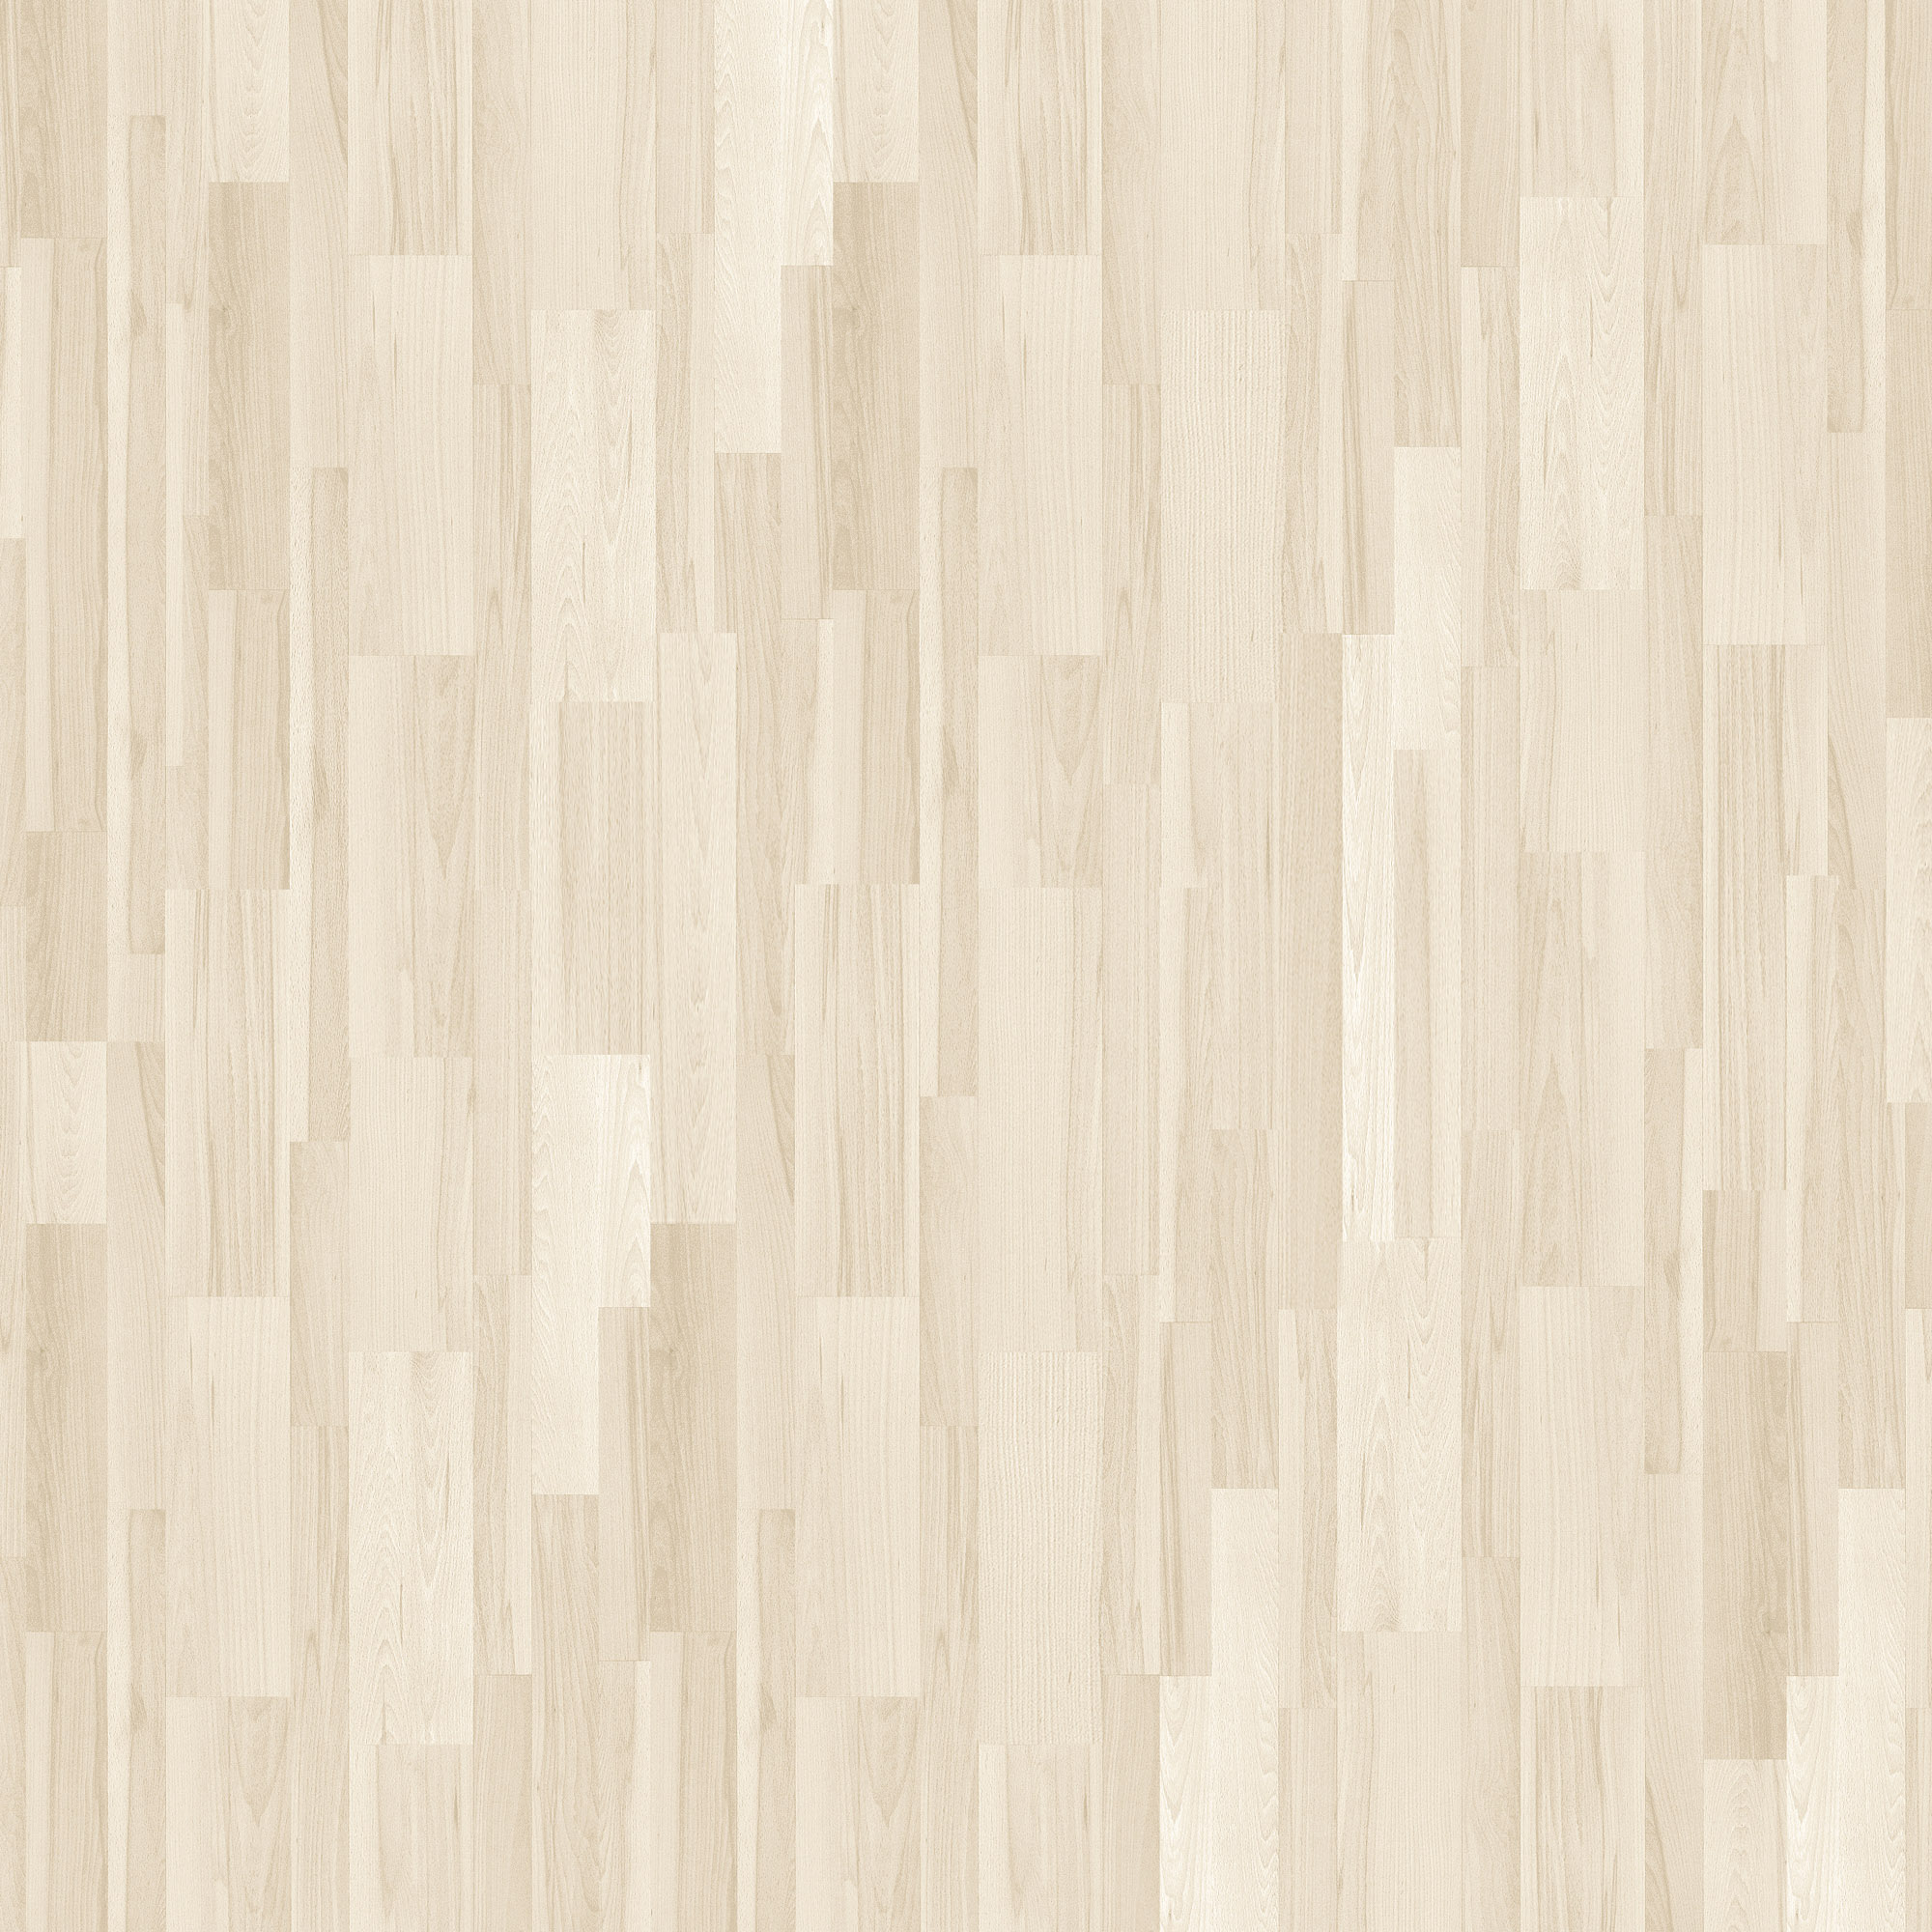 Wood planks white hardwood floor white hardwood floor jpgjpg Acton Woodworks